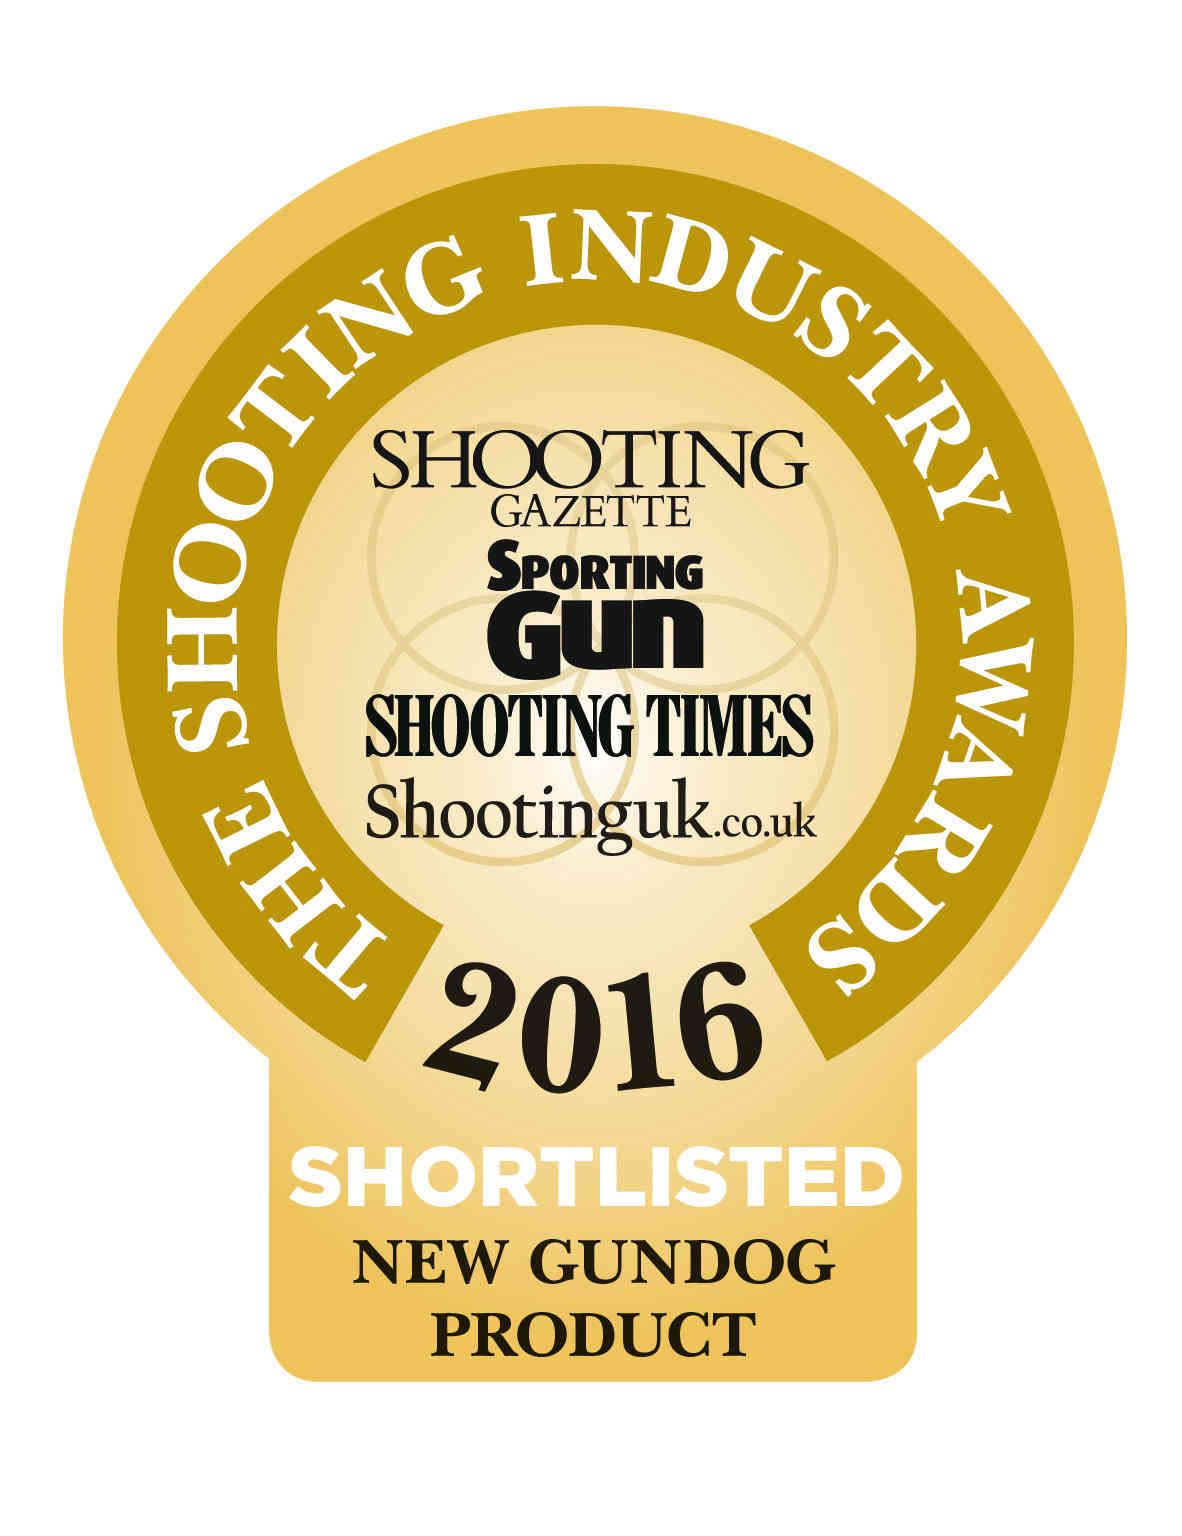 The Retrieving Roll was shortlisted at the Shooting Industry Awards